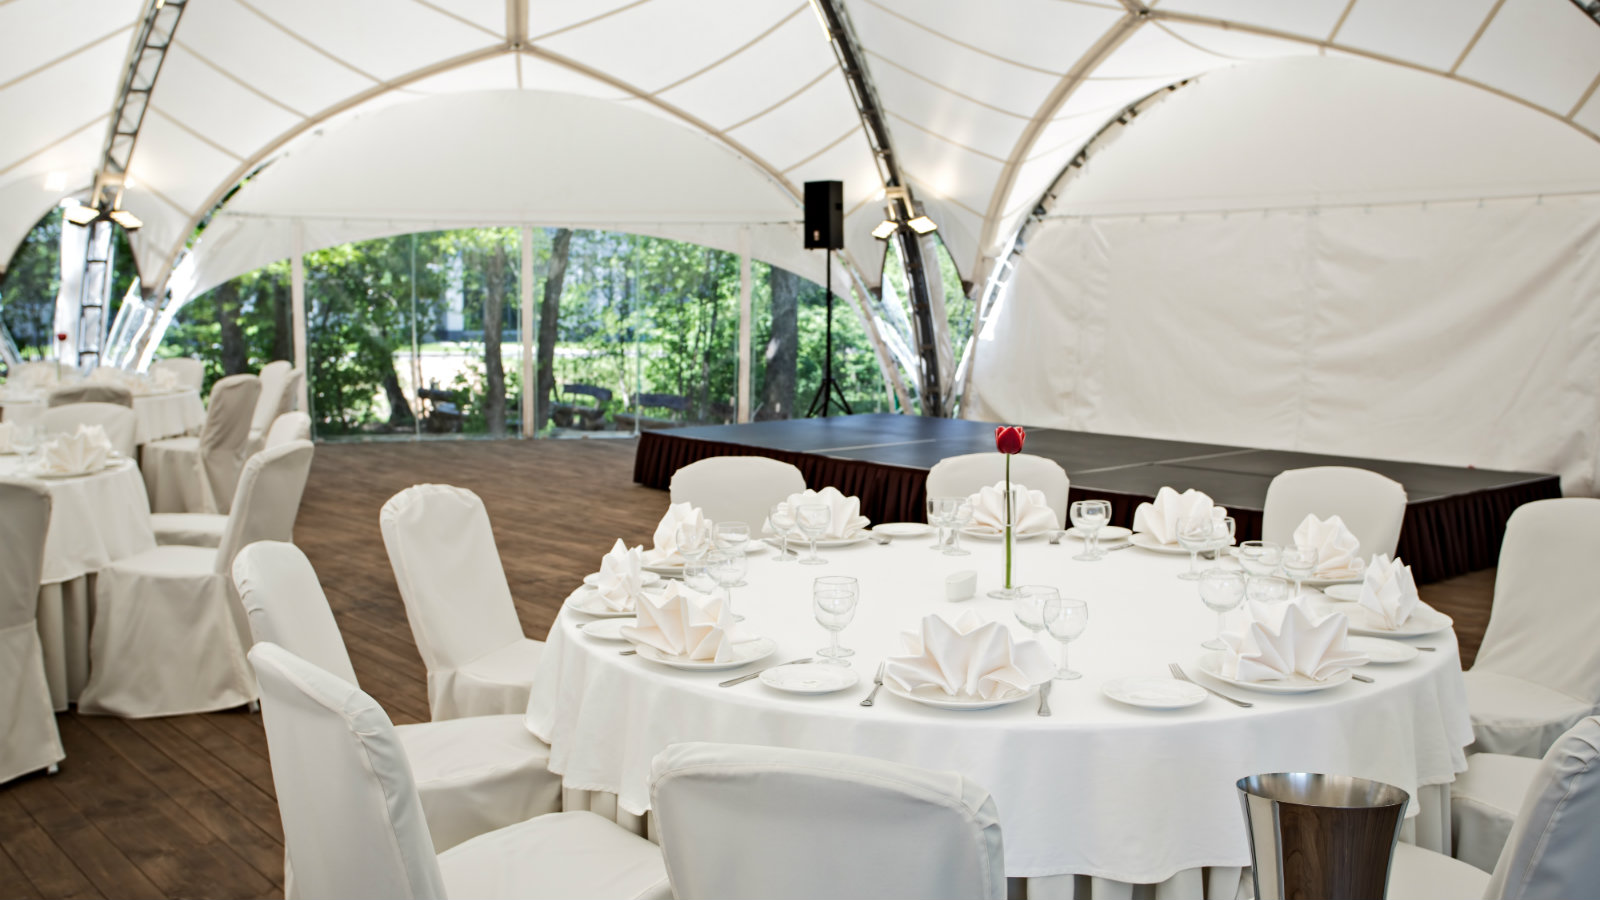 Summer heated tent surrounded by beautiful forest at Sheraton Moscow Sheremetyevo